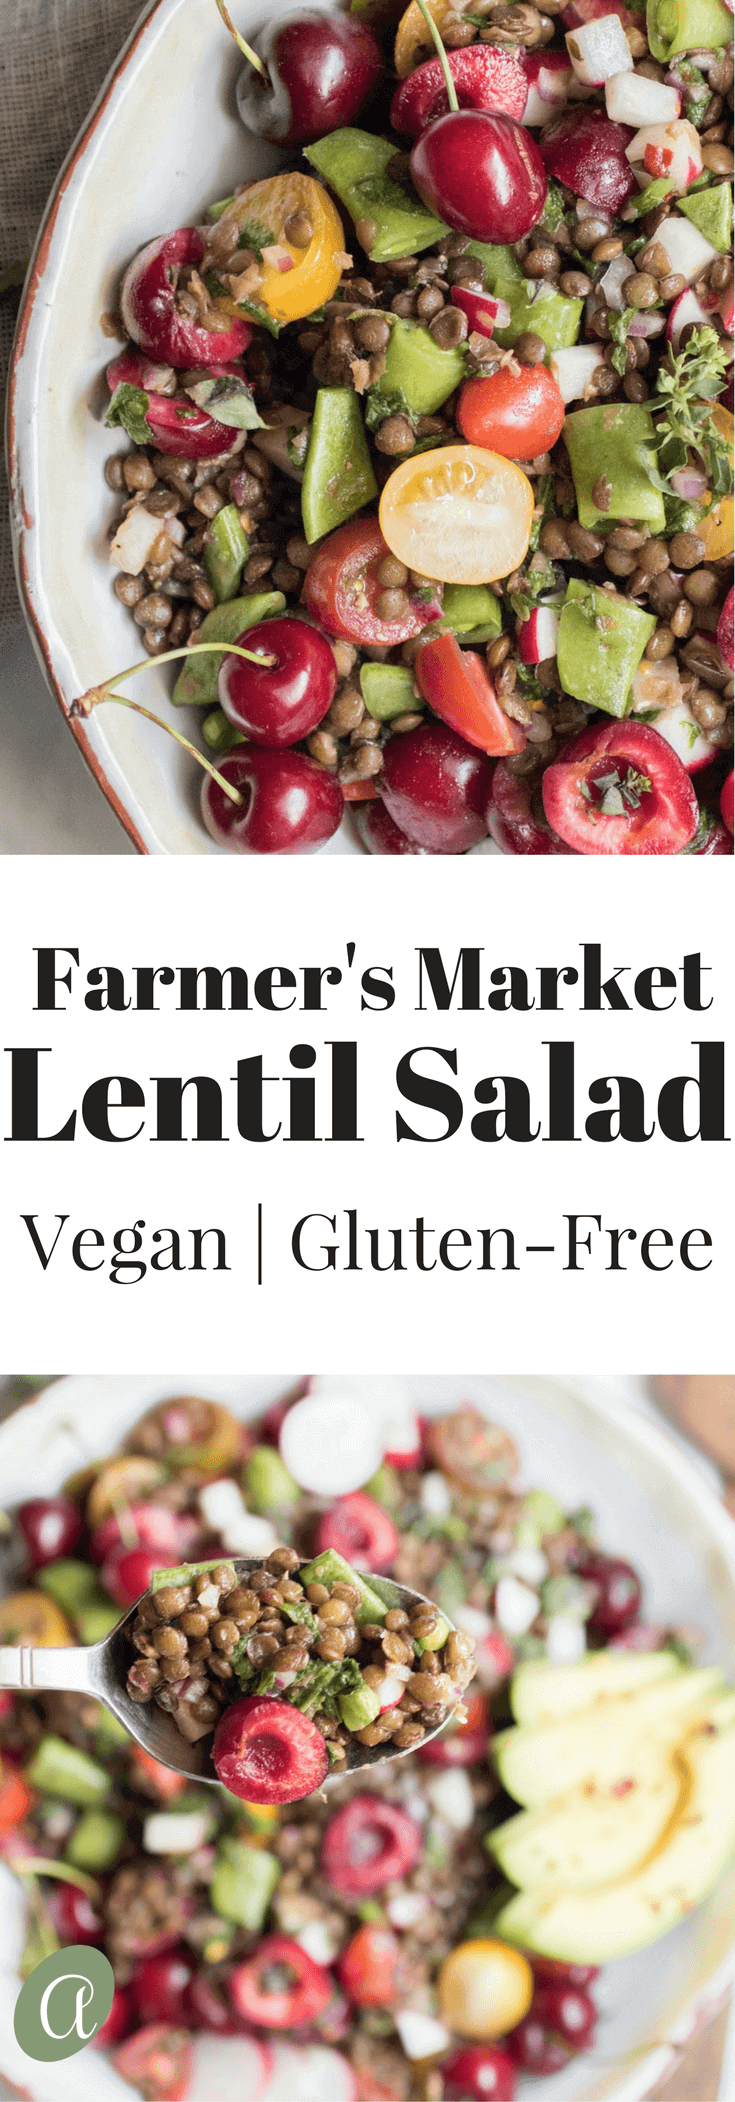 Farmer's market lentil salad with fresh cherries, sugar snap peas, and fresh oregano. A beautiful bounty of healthy local seasonal veggies and protein rich lentils. An easy to make, super delicious, vegan and gluten free summer salad.